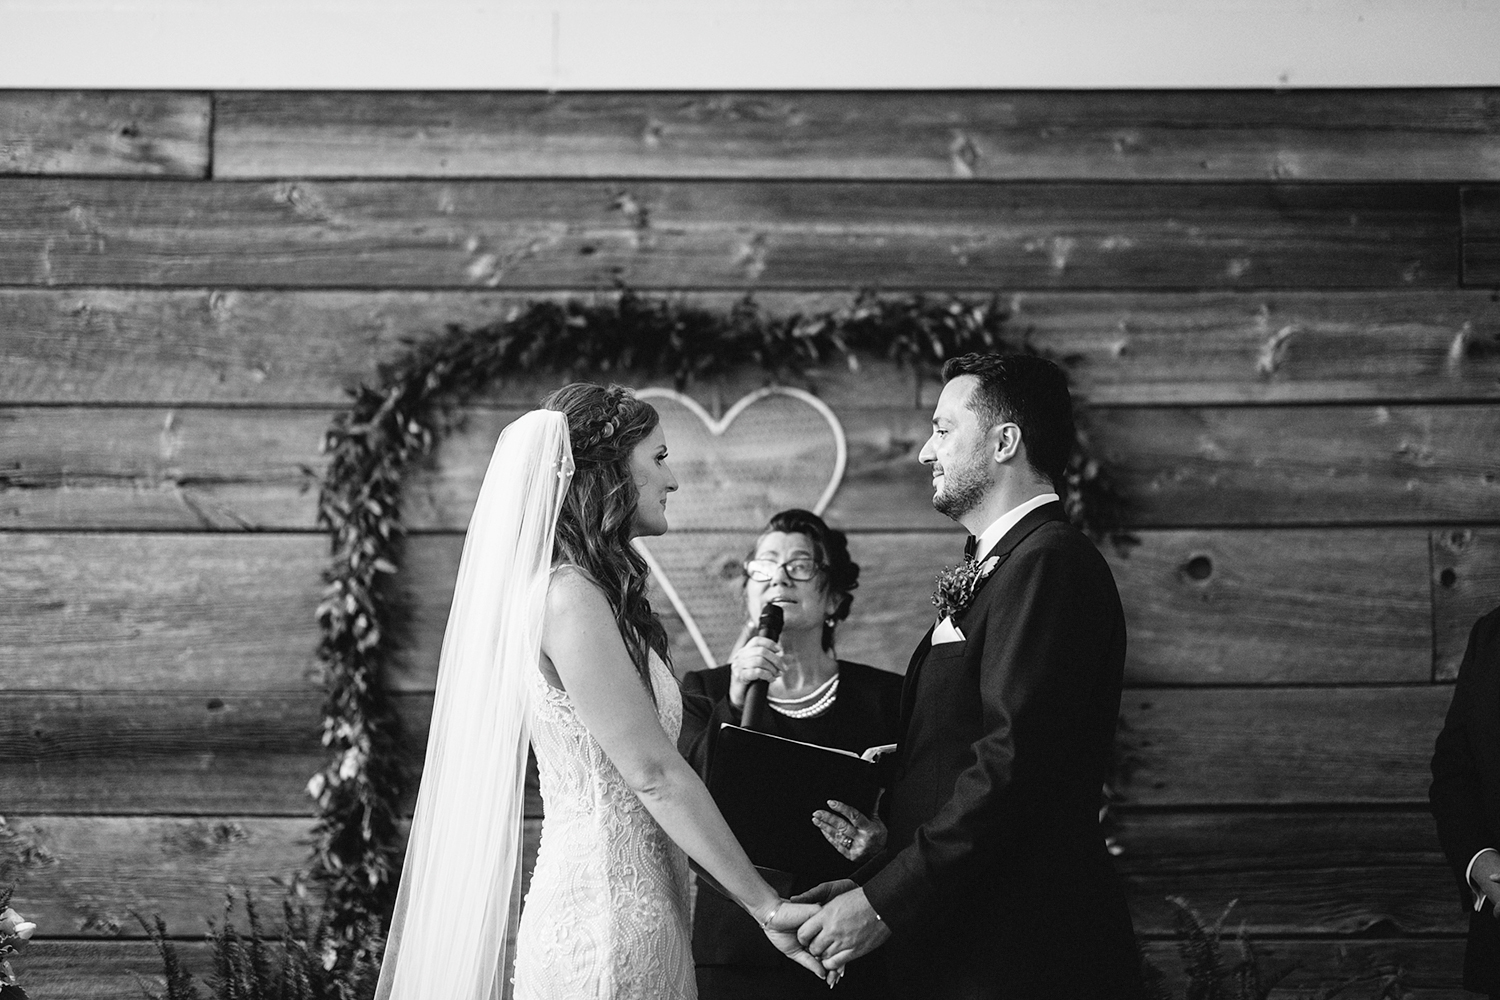 downtown-toronto-wedding-photographer-ryanne-hollies-photography-airship37-distillery-district-wedding-day-modern-minimalist-venues-in-toronto-ceremony-documentary-moments-bride-and-groom-saying-vows-emotional-beautiful-bw.jpg